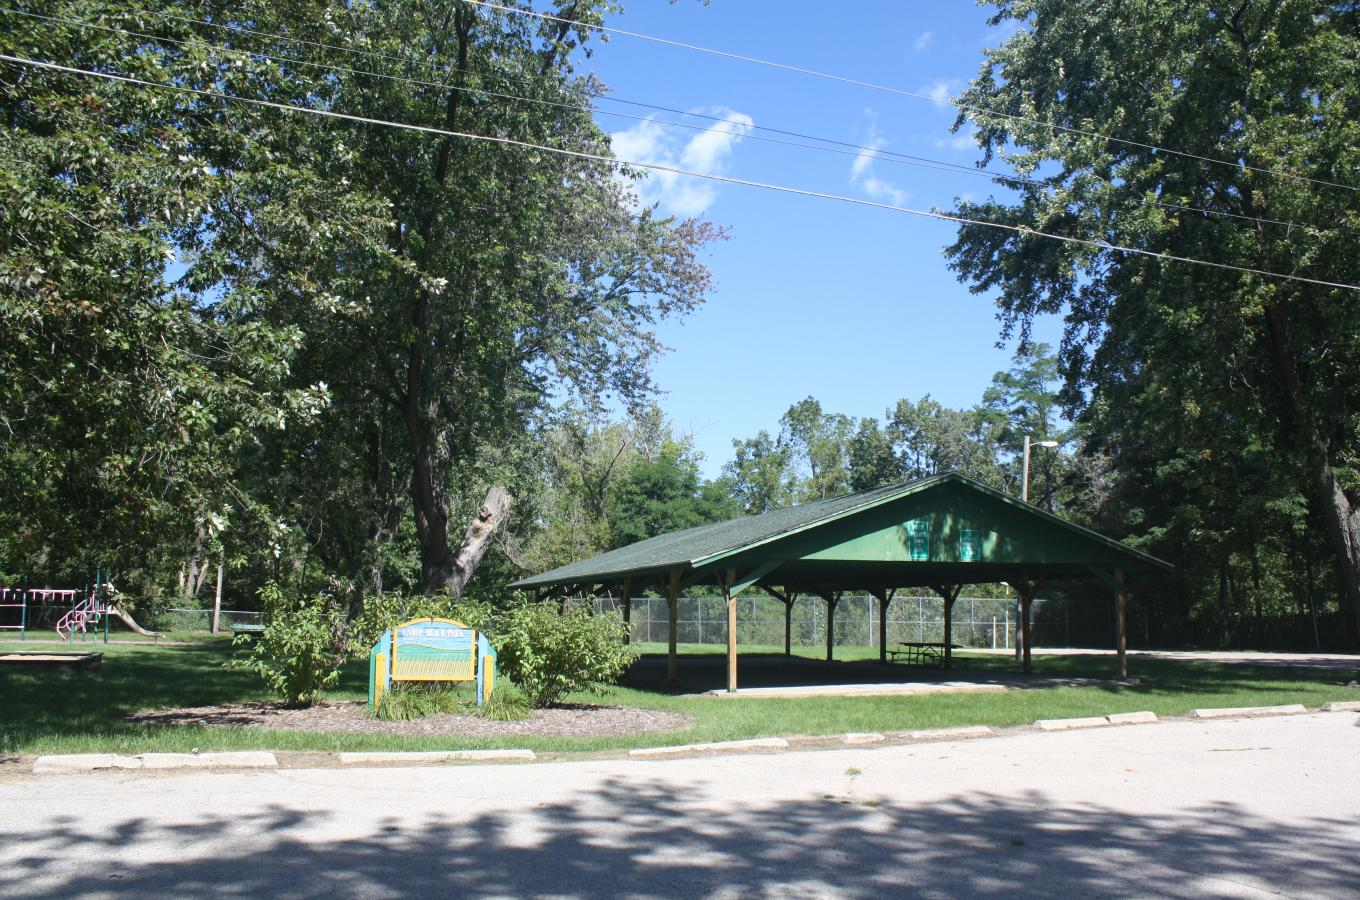 Carol Beach Park sign and shelter V Pic